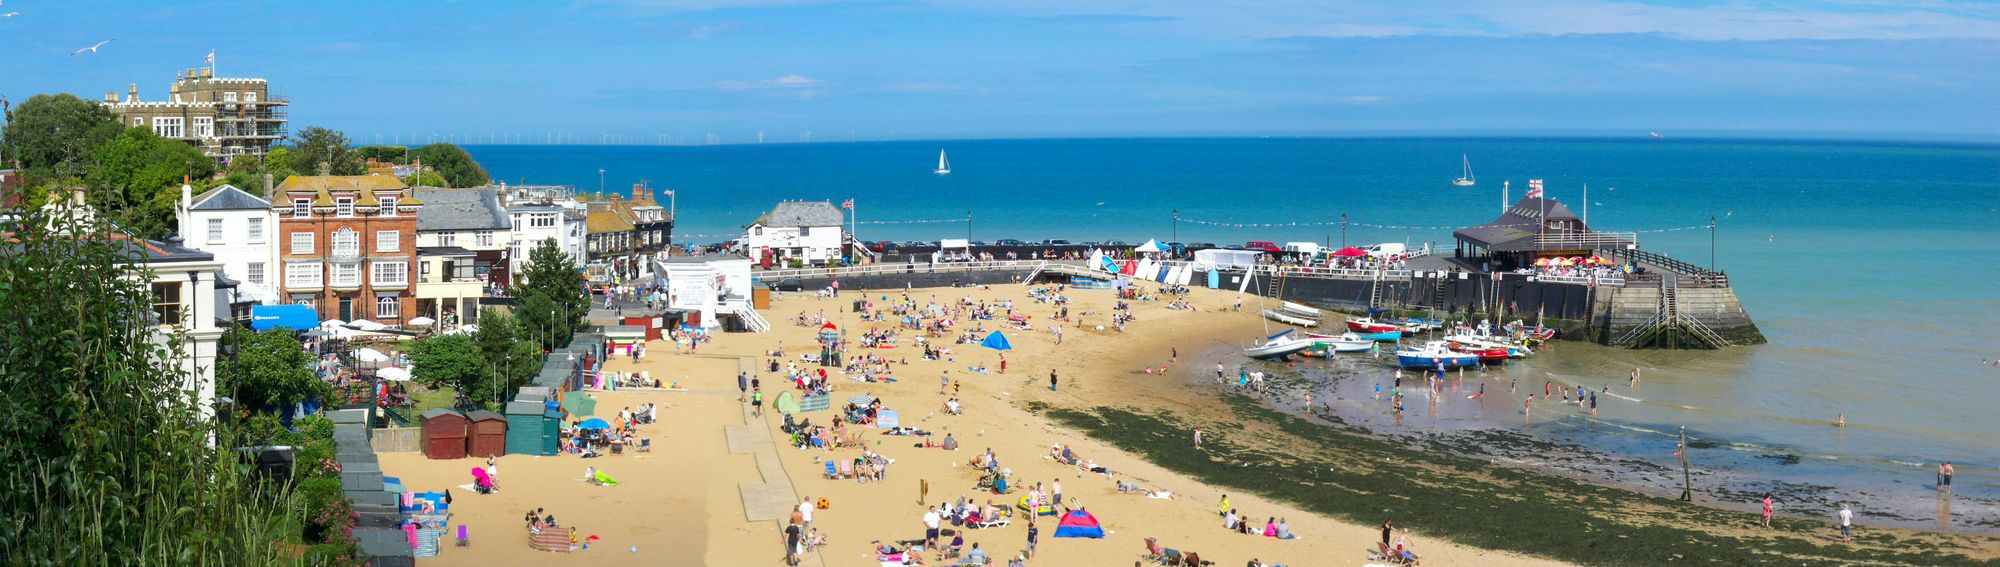 Top places to stay in Broadstairs